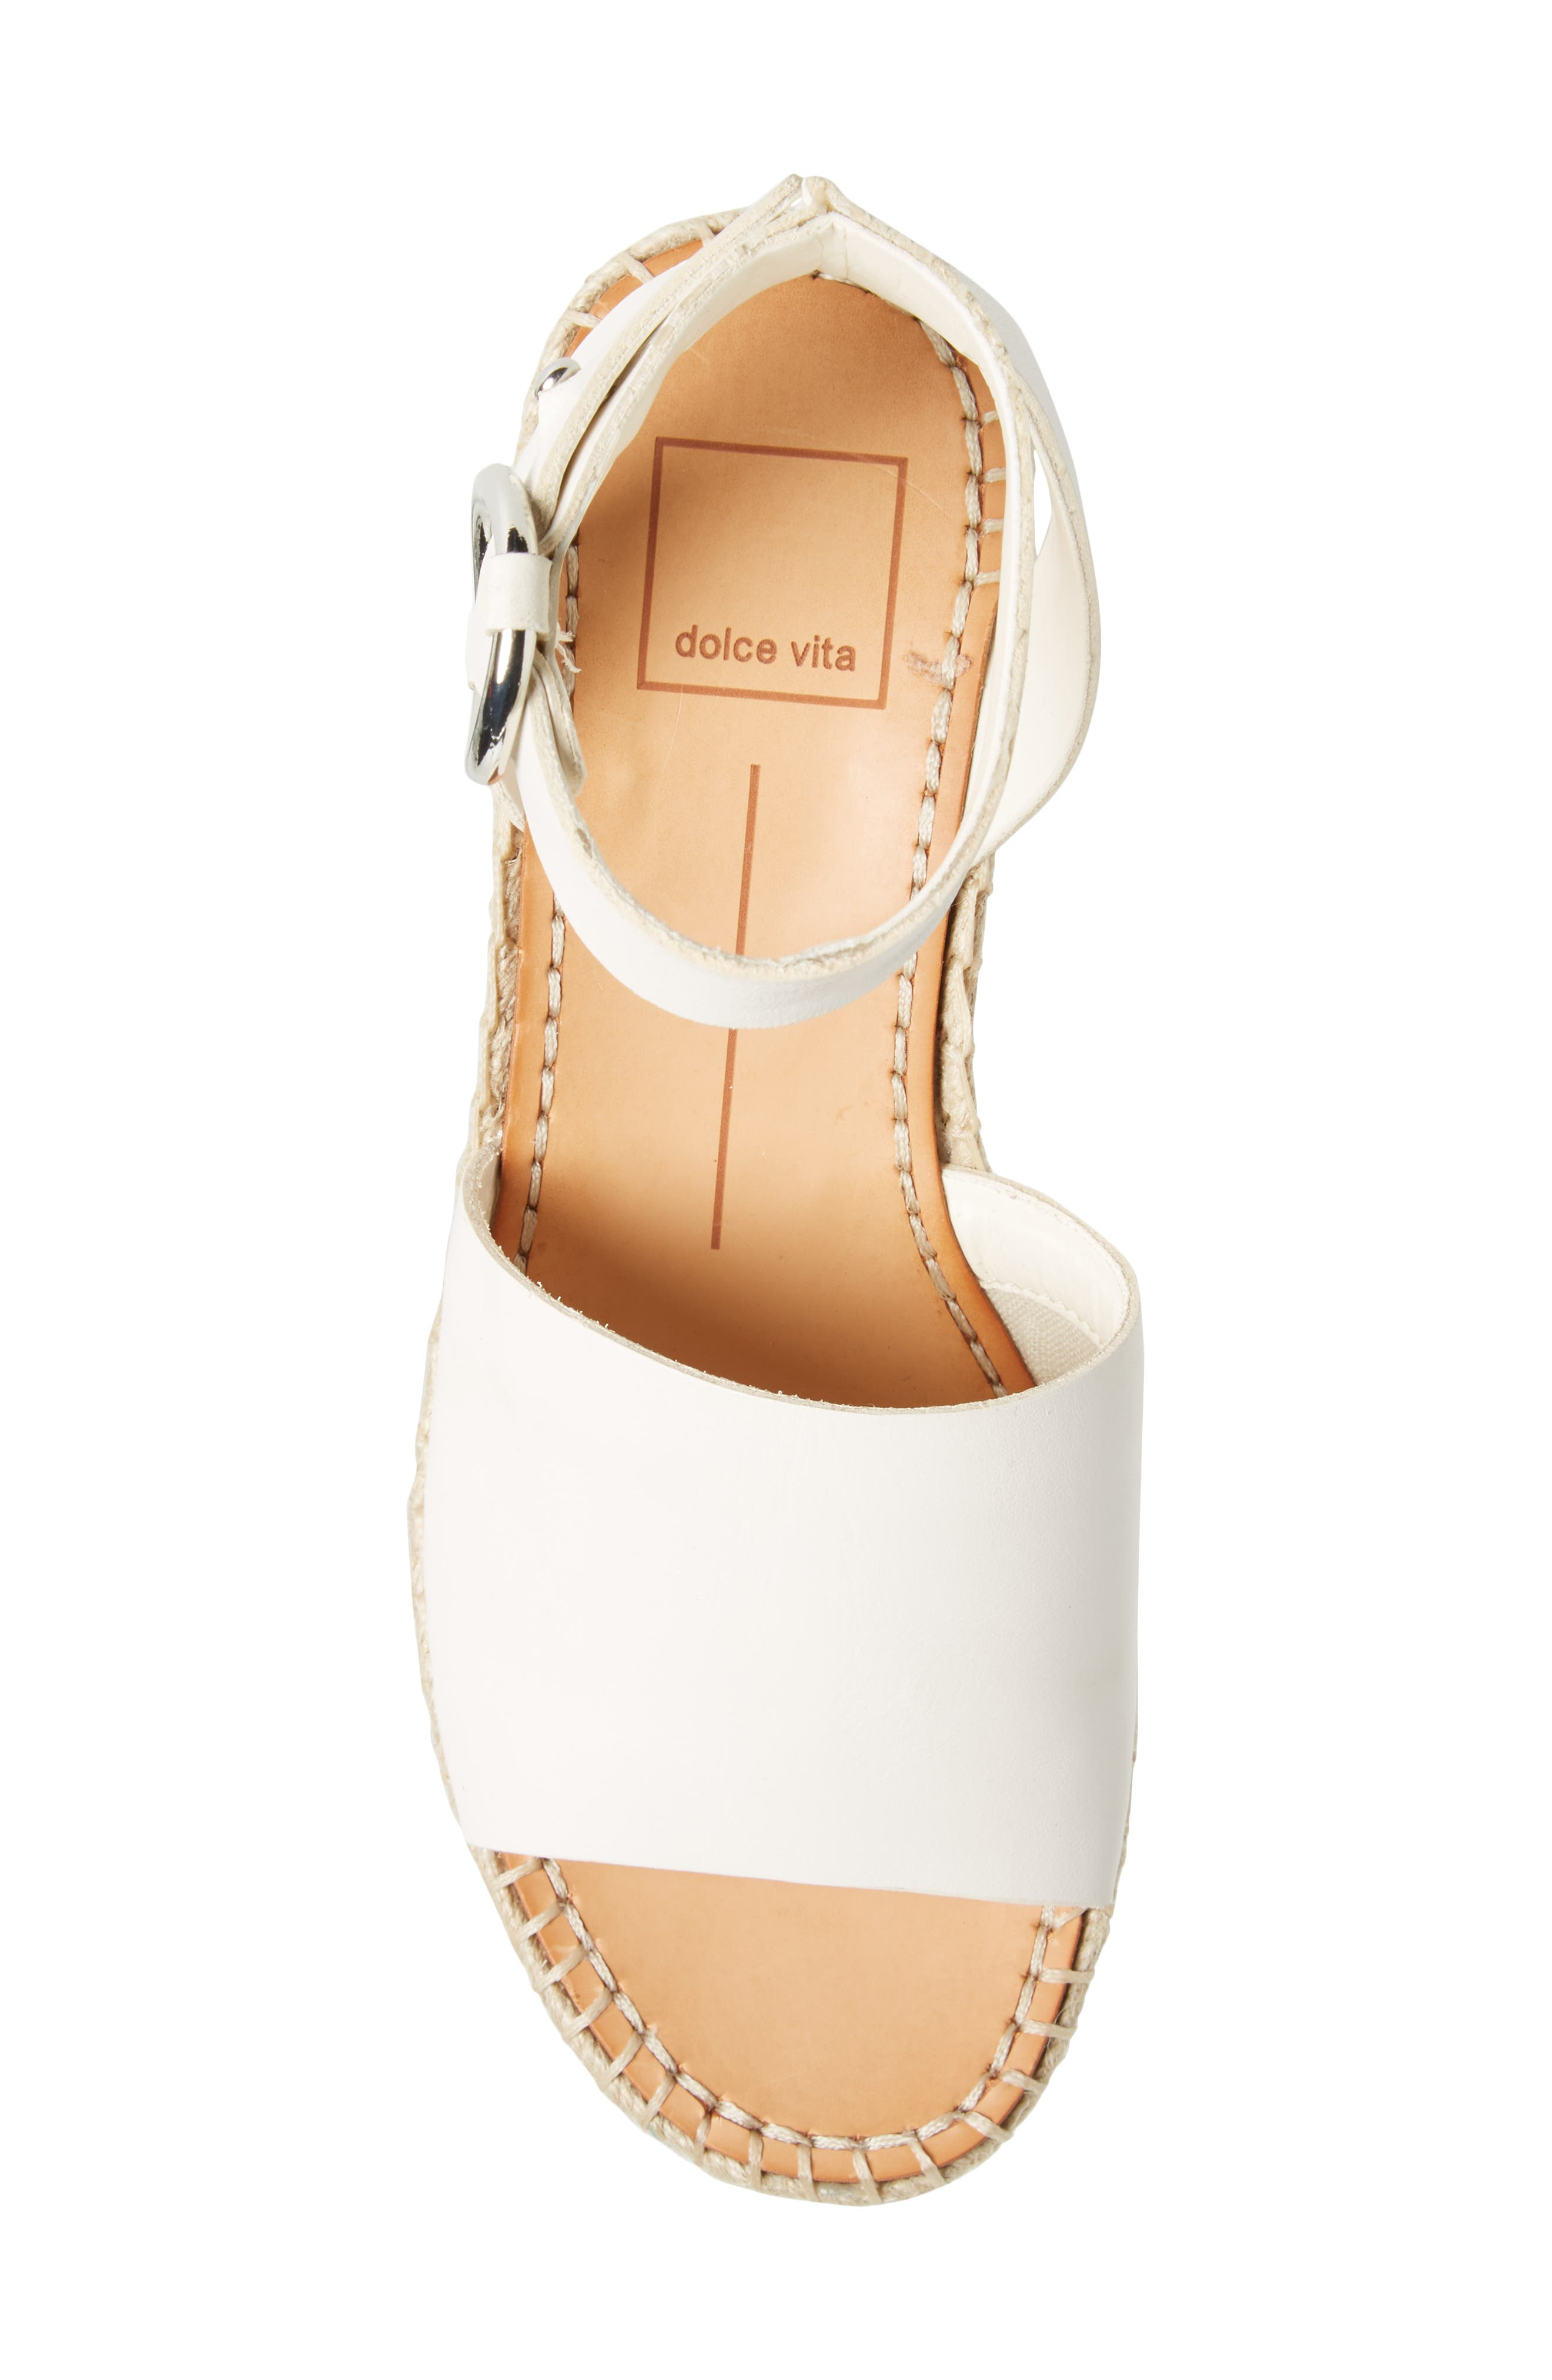 DOLCE VITA, Lesly Espadrille Platform Sandal, Alternate thumbnail 5, color, OFF WHITE